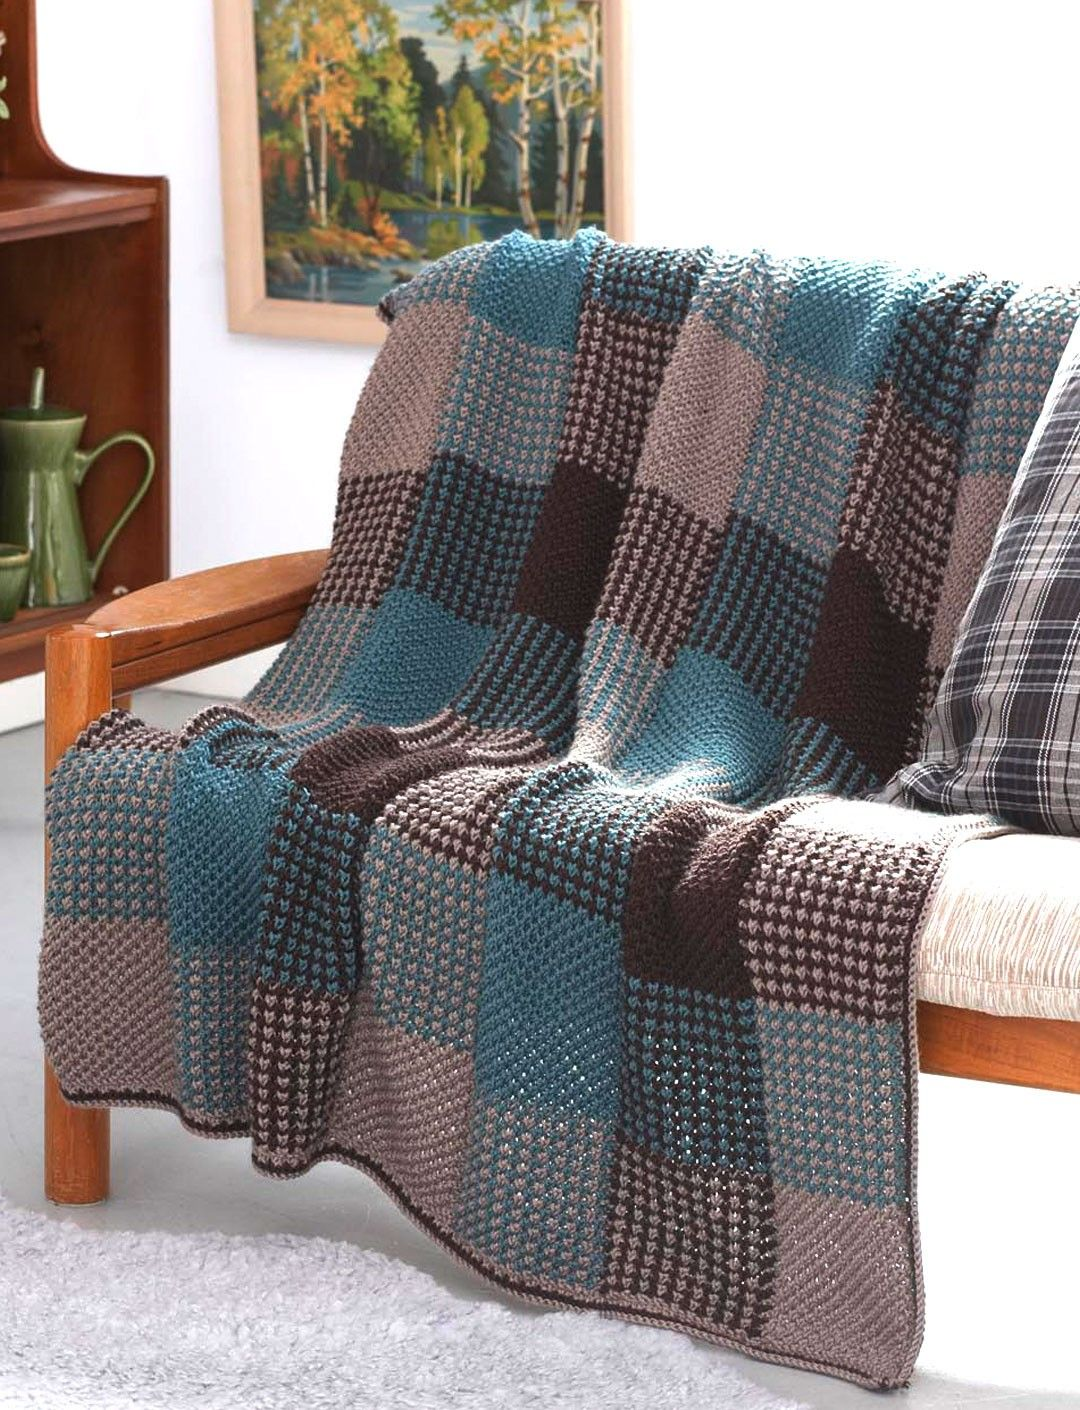 Yarnspirations patons plaid texture afghan patterns free pattern bankloansurffo Images